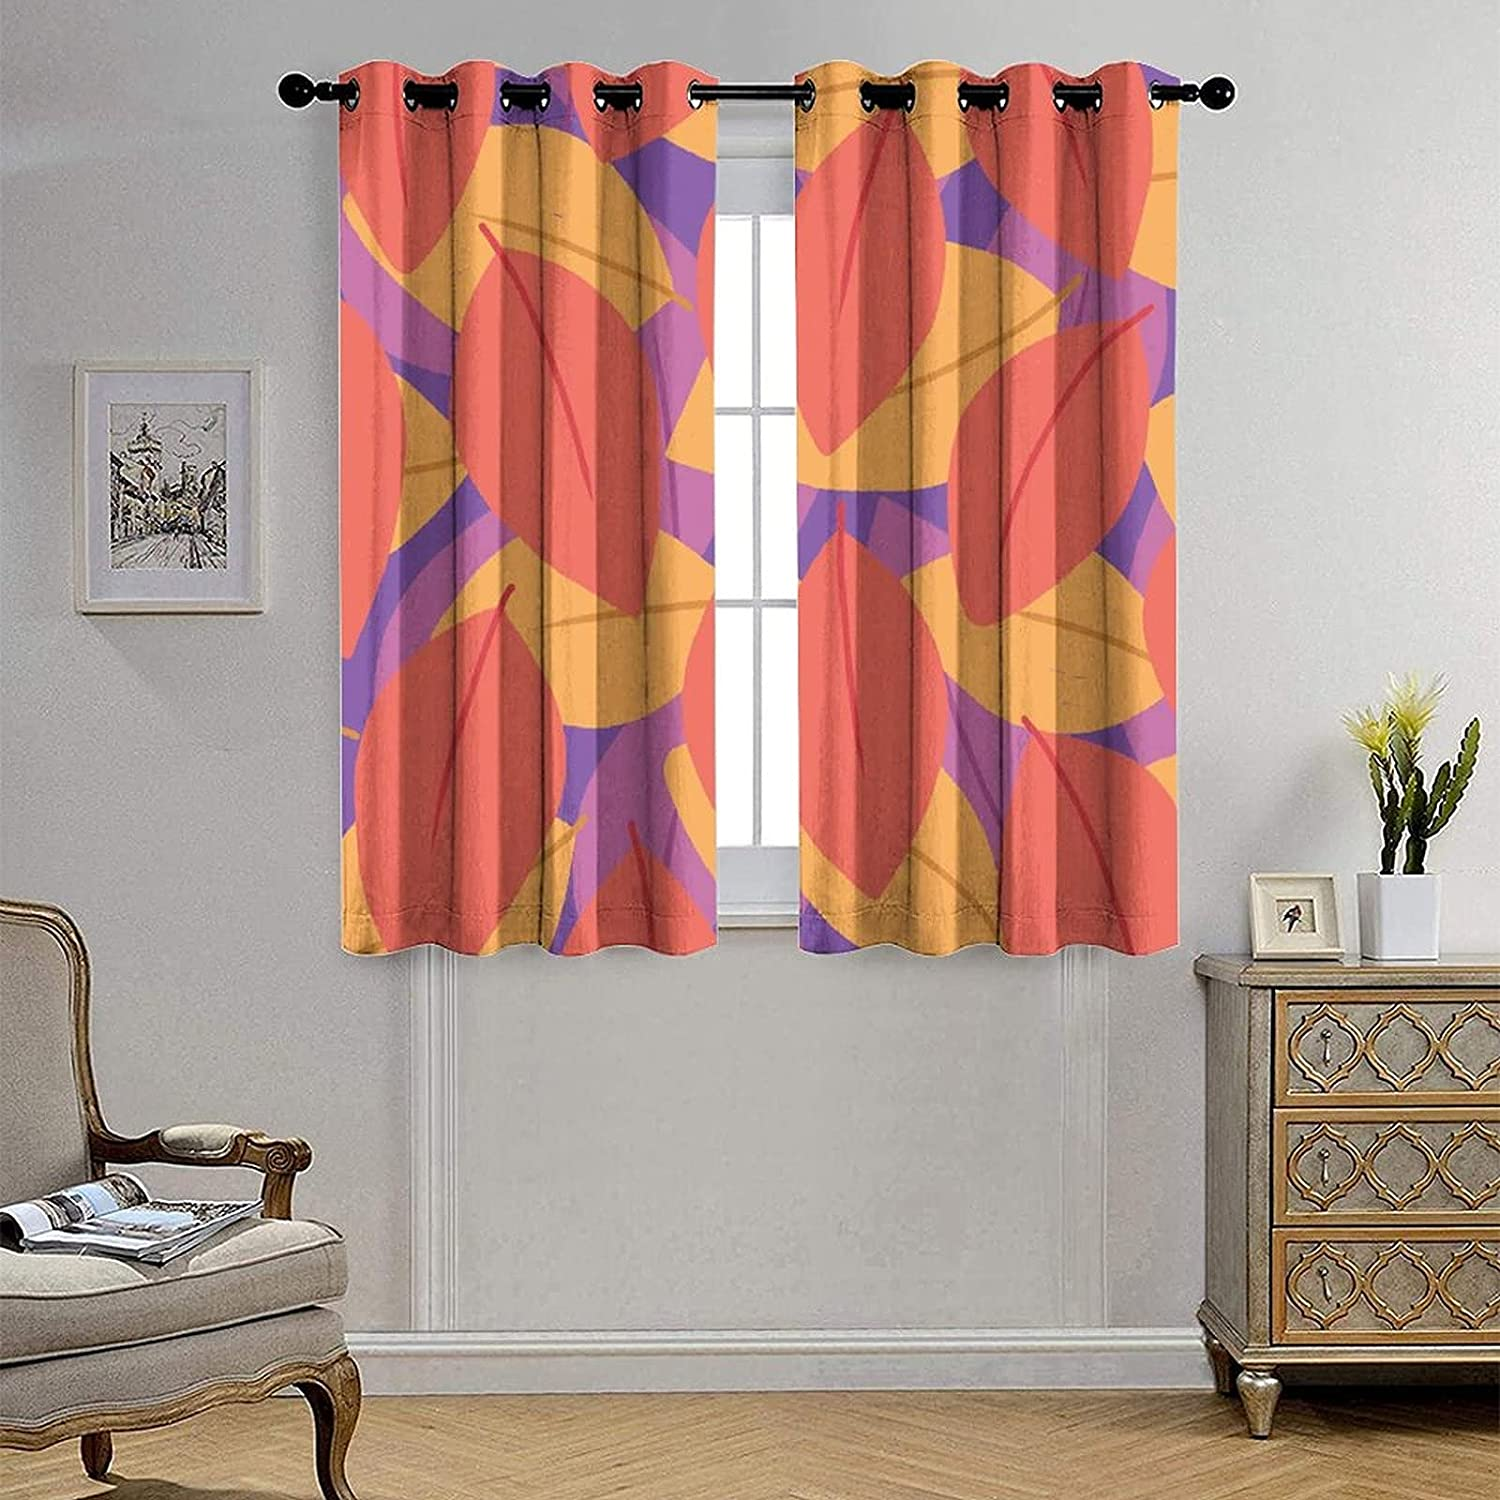 Jktown Blackout Max 82% OFF Window Curtain Panels F and Curtains Now on sale Plant Heat